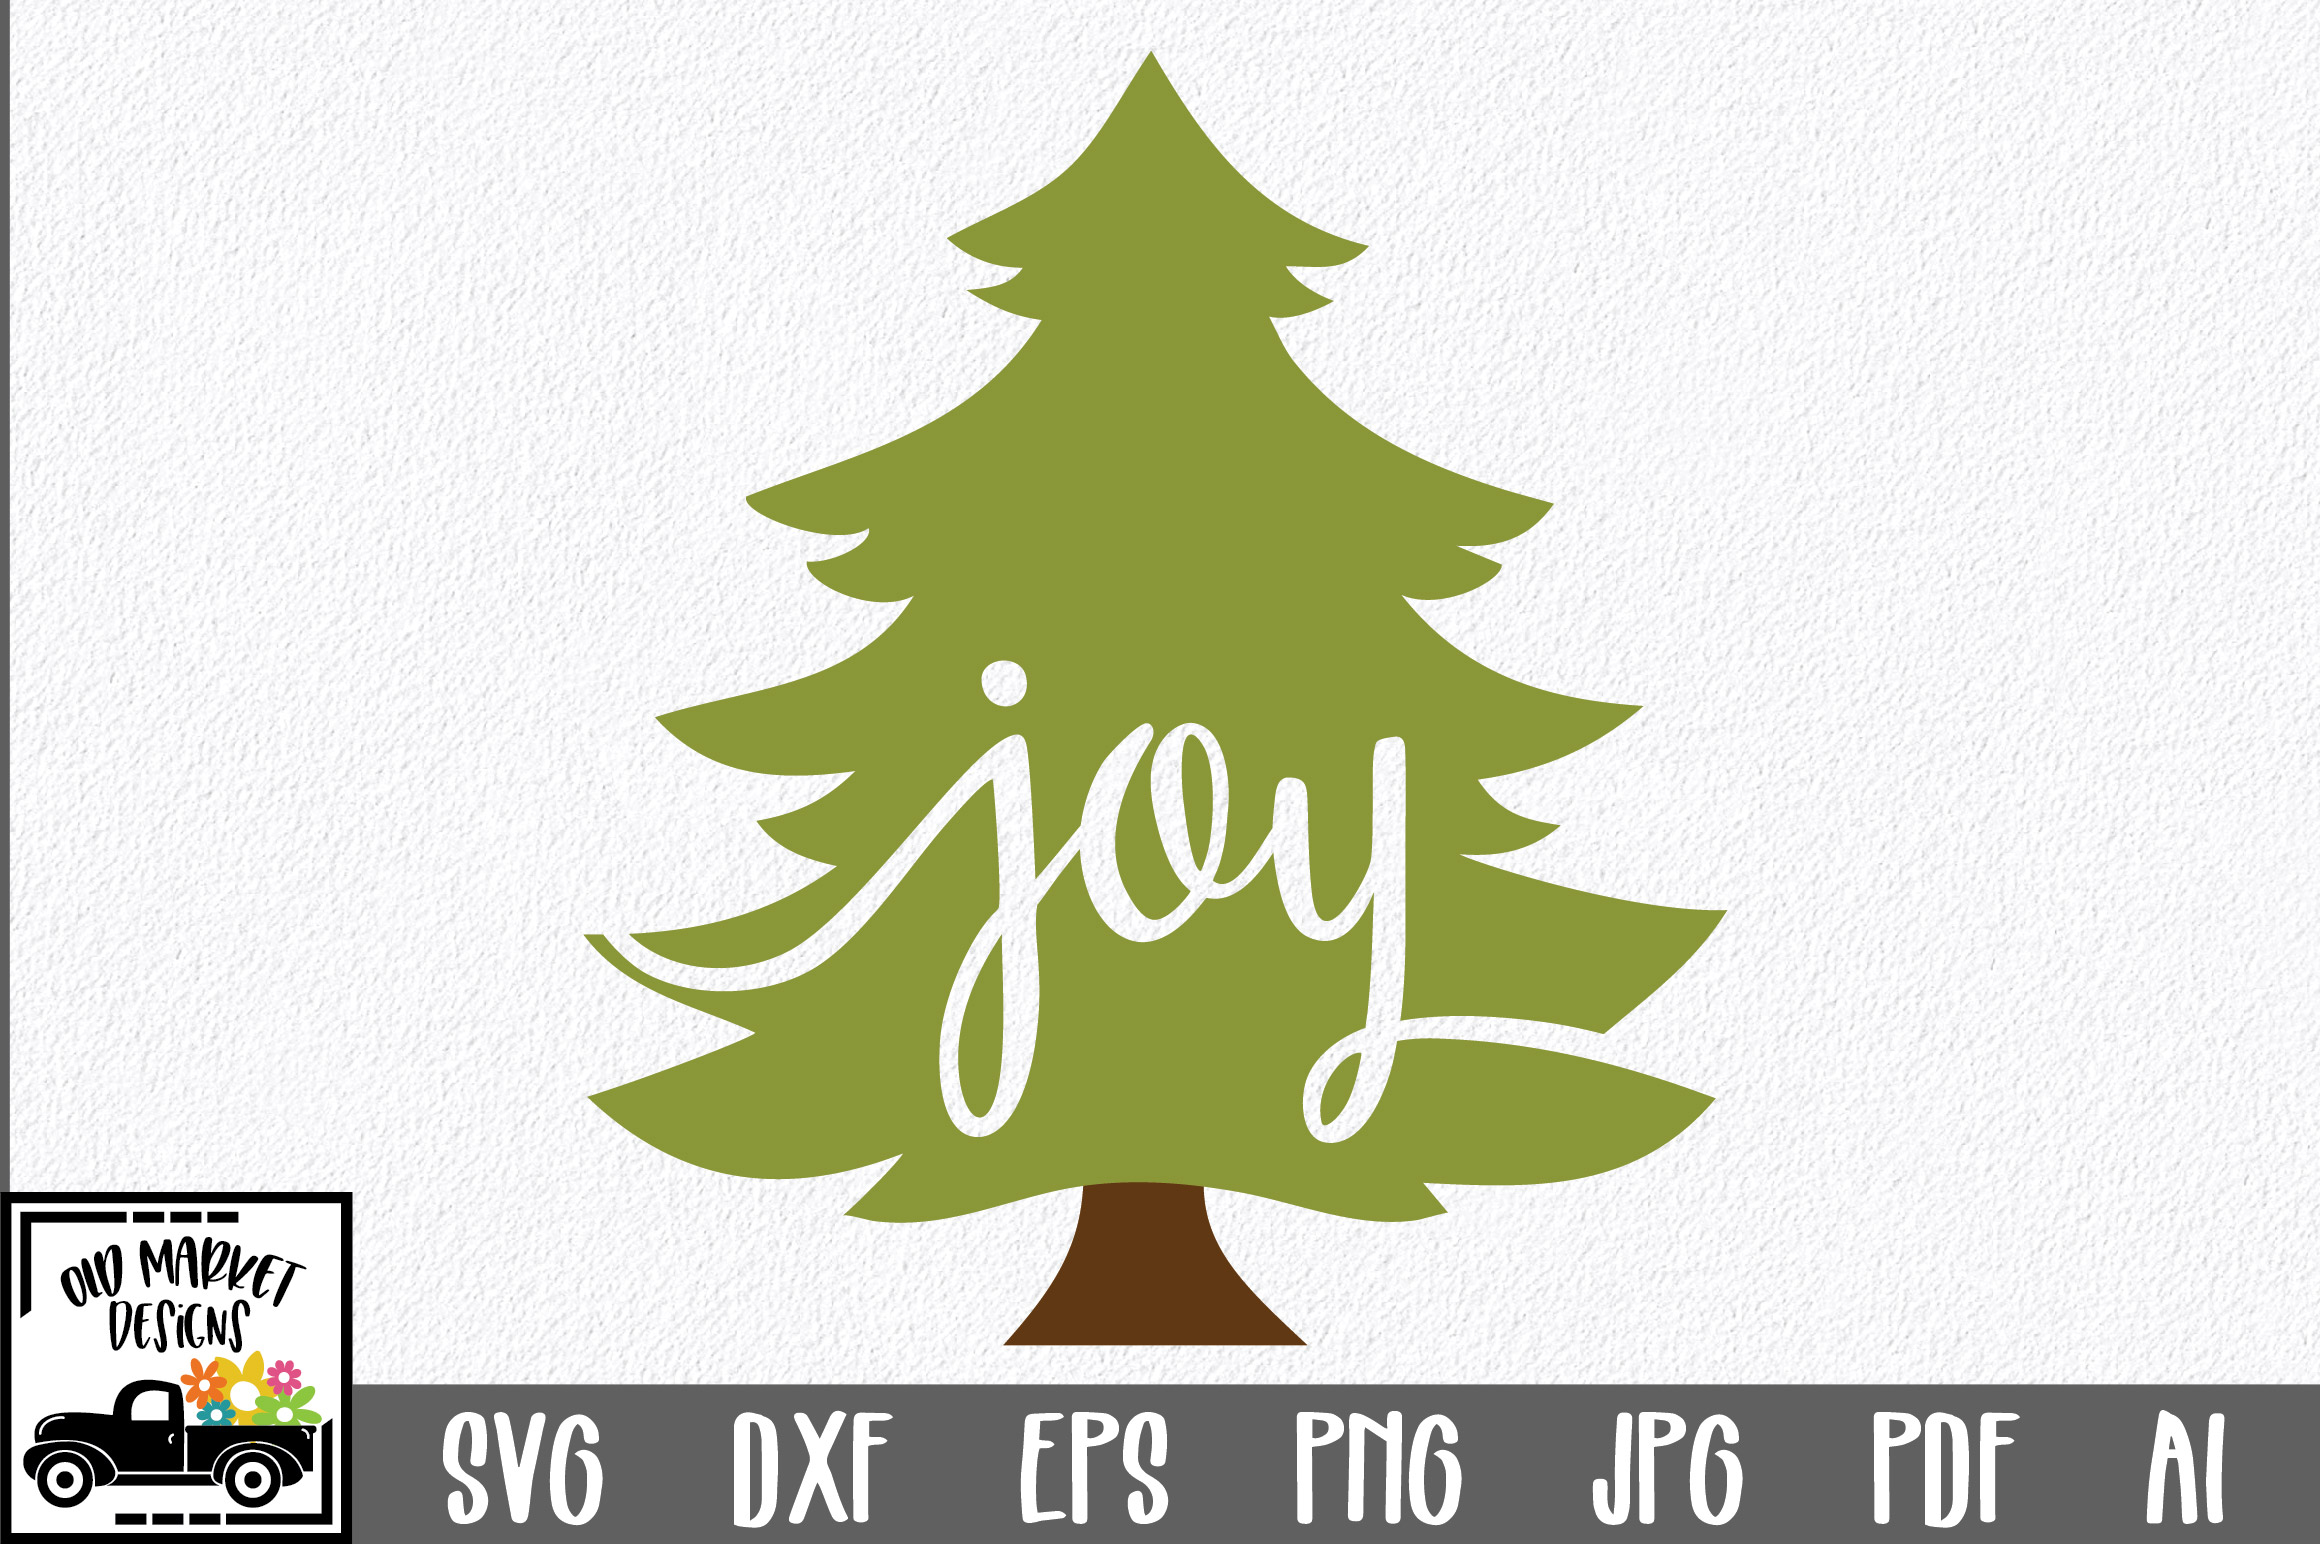 Download Free Christmas Joy Christmas Tree Graphic By Oldmarketdesigns for Cricut Explore, Silhouette and other cutting machines.